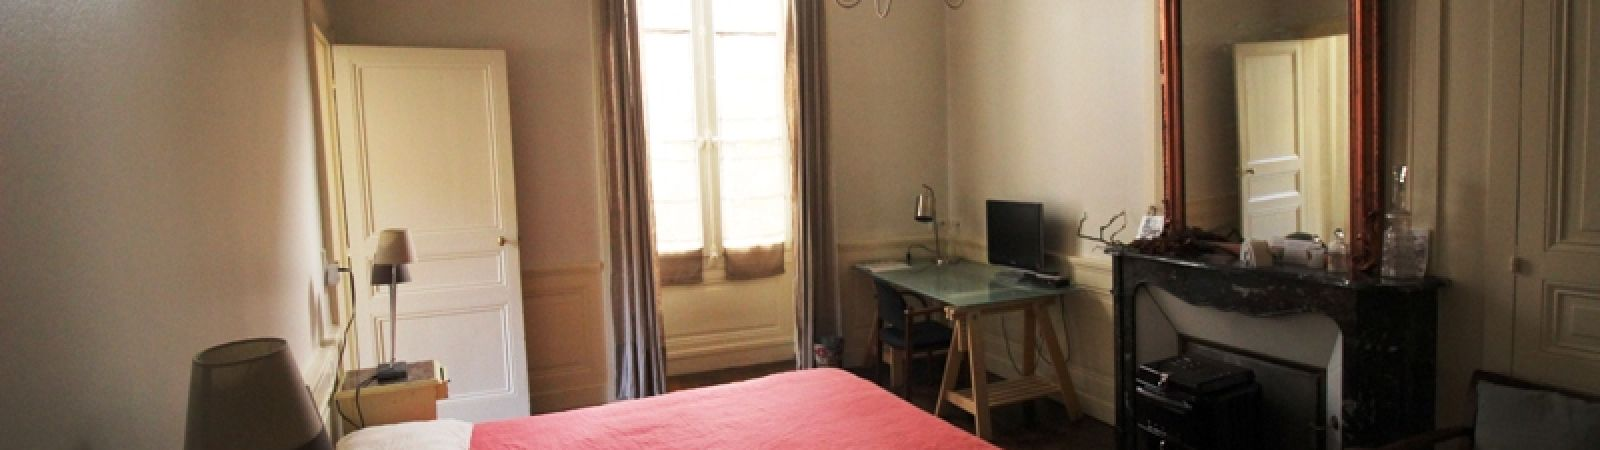 photo 7: Ensemble de 6 appartements